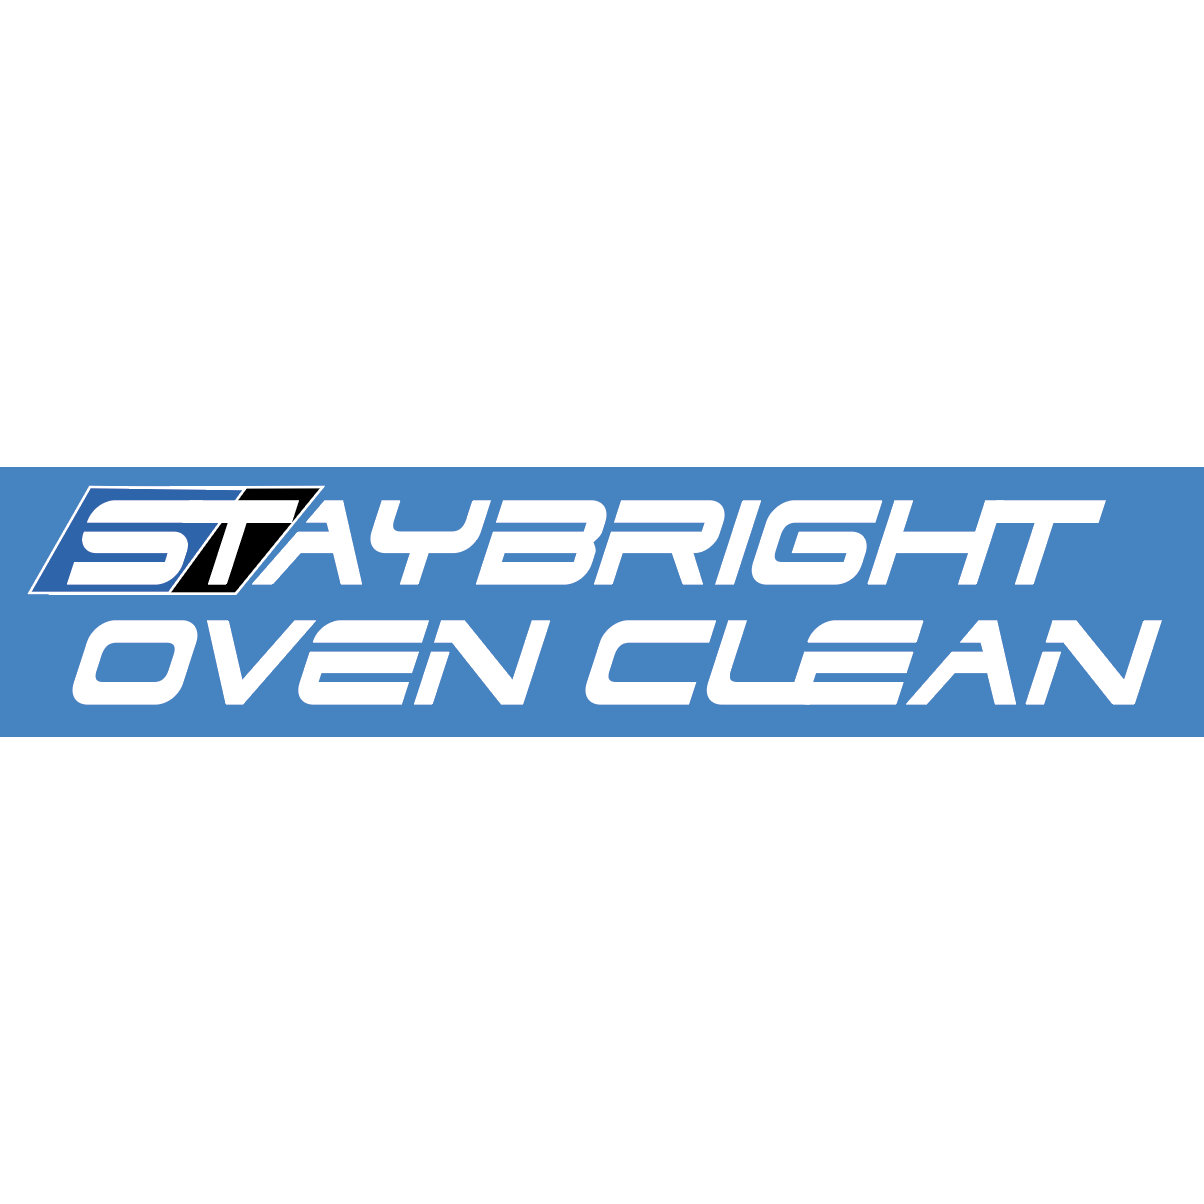 Staybright Oven Clean - Loughborough, Leicestershire LE12 7FG - 07718 629562 | ShowMeLocal.com